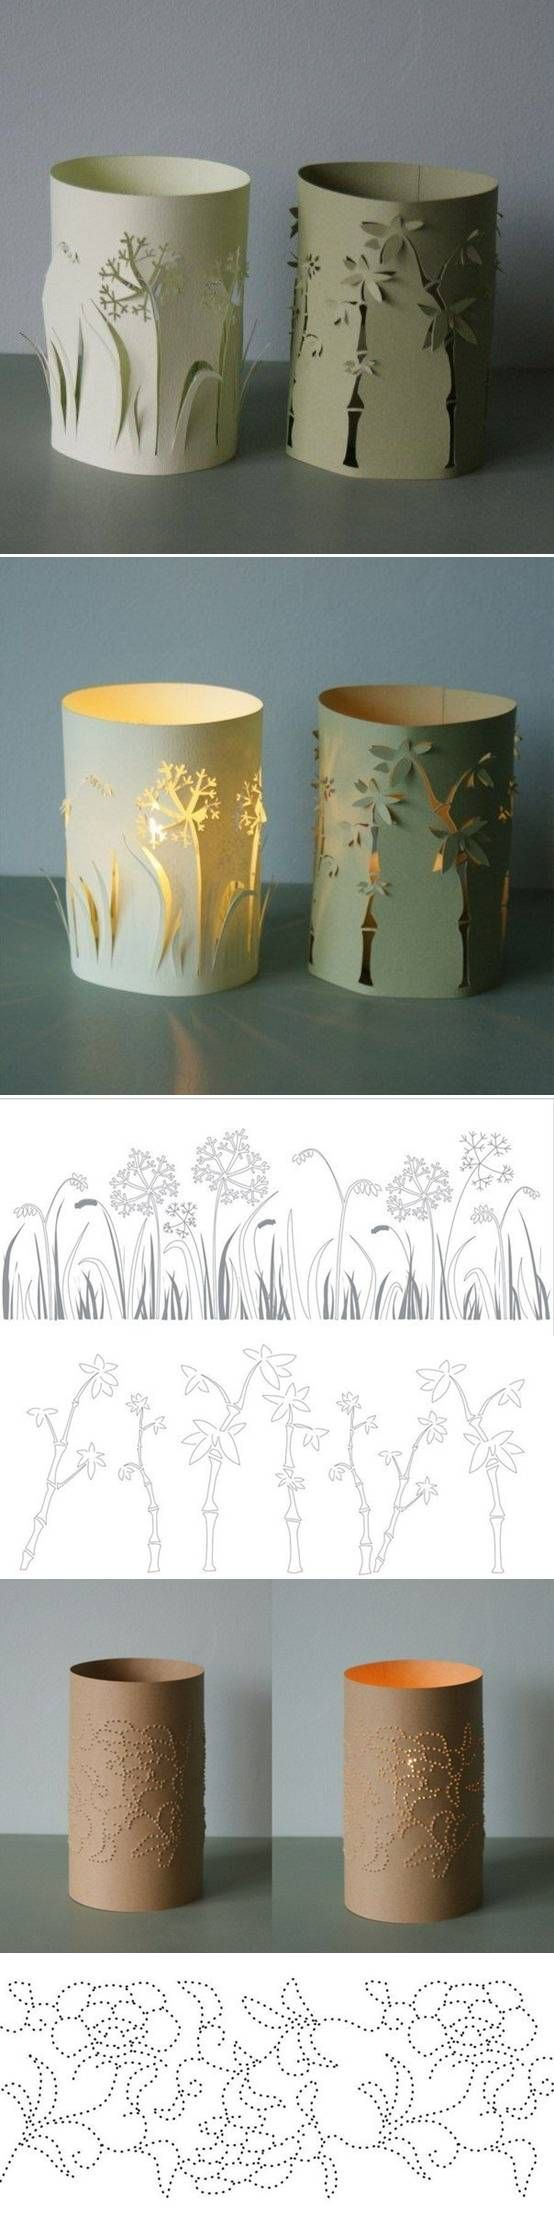 DIY Paper Candlestick Pattern DIY Projects | UsefulDIY.com